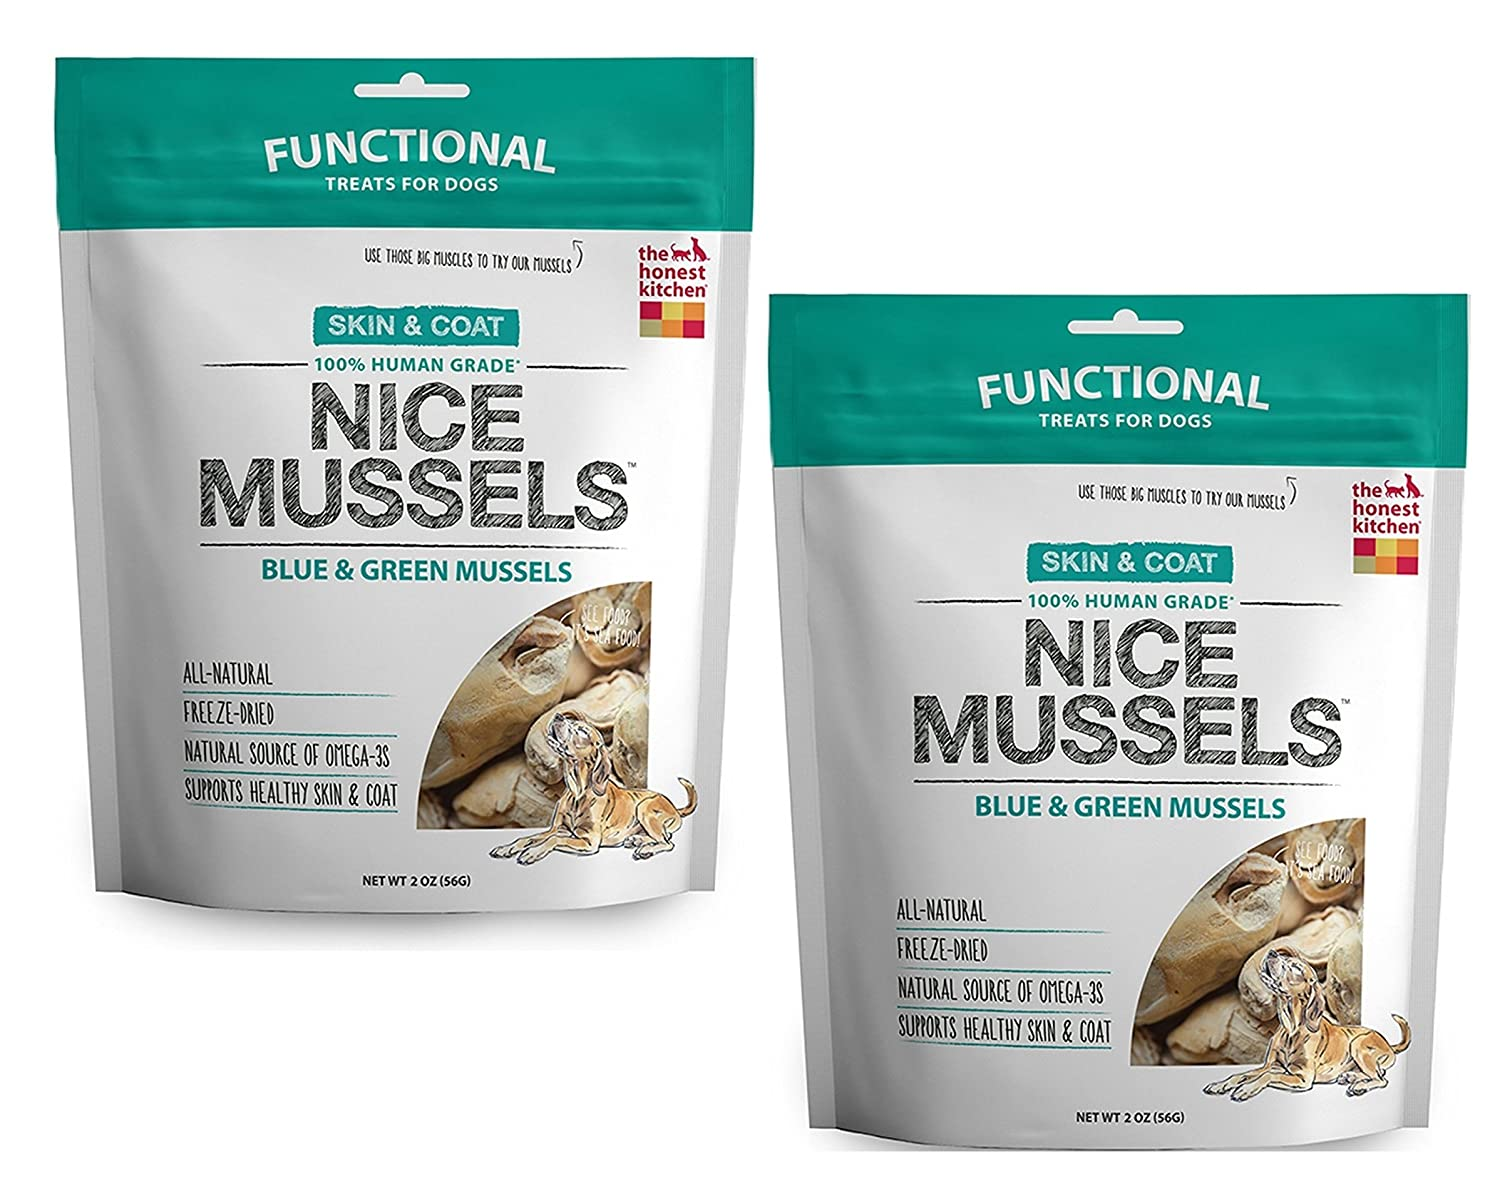 Amazon.com : The Honest Kitchen Nice Mussels: Natural Human Grade ...